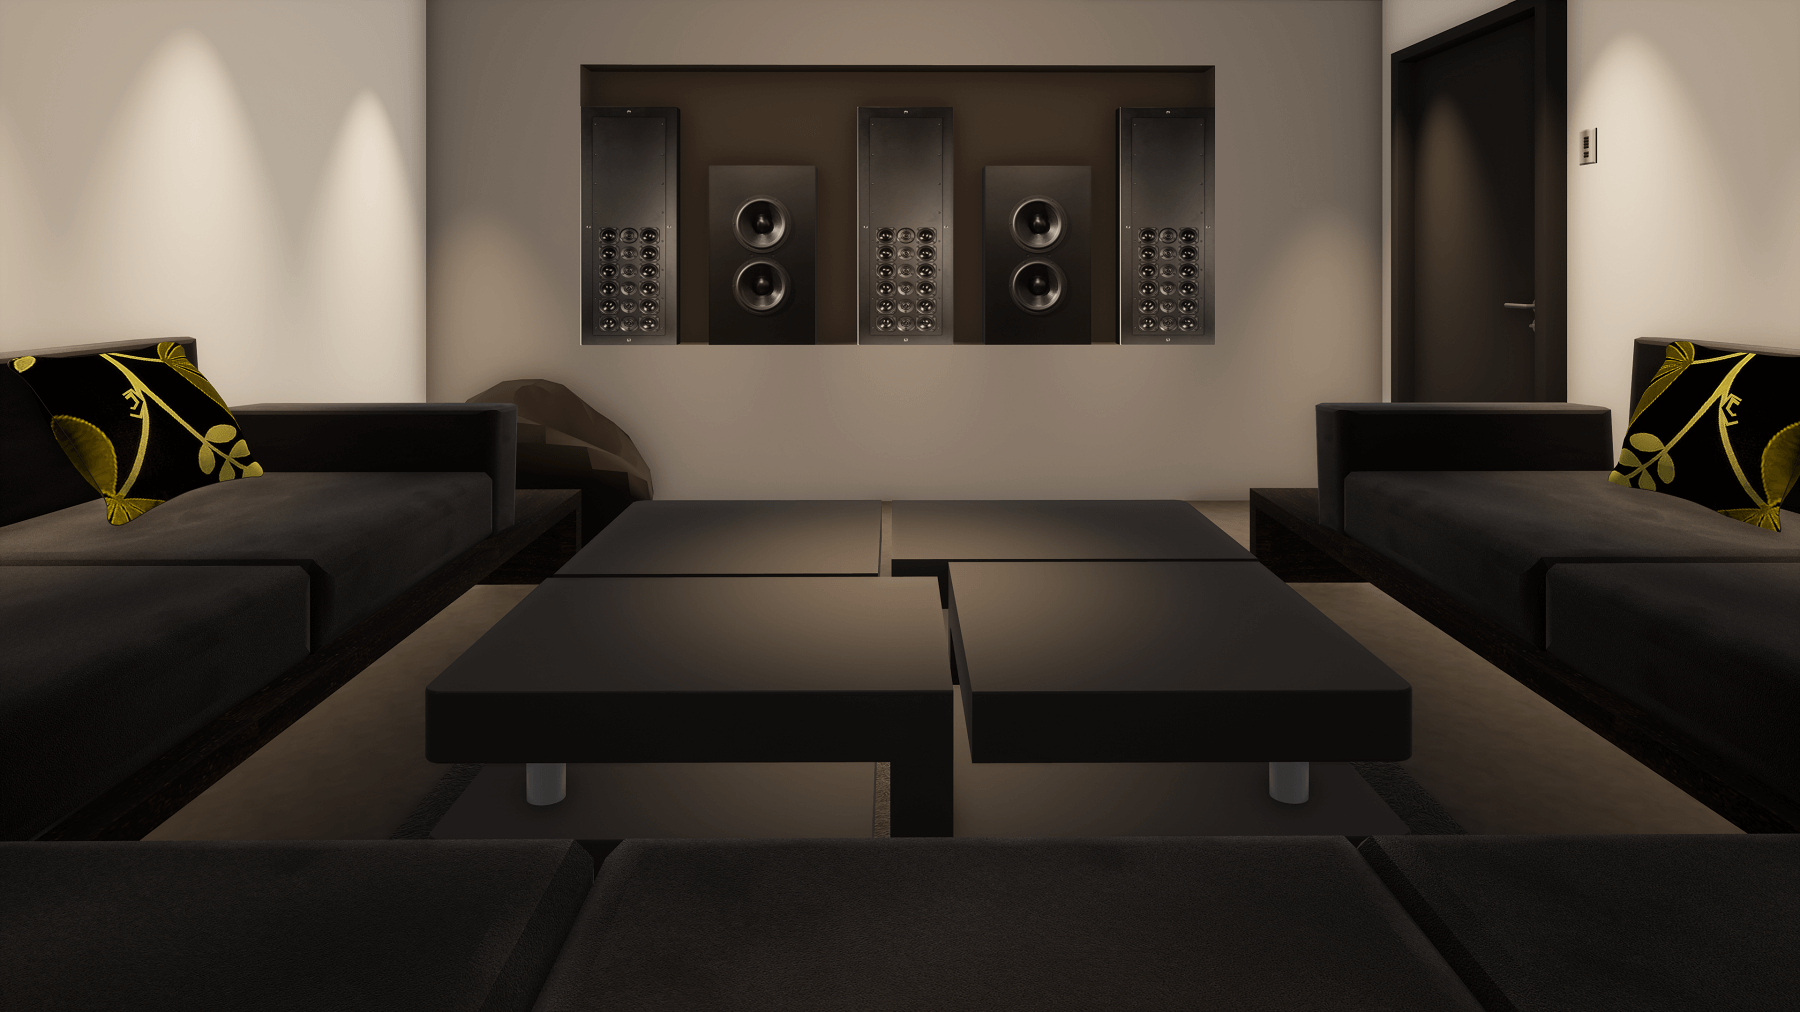 Small Home Cinema Room showing Speakers